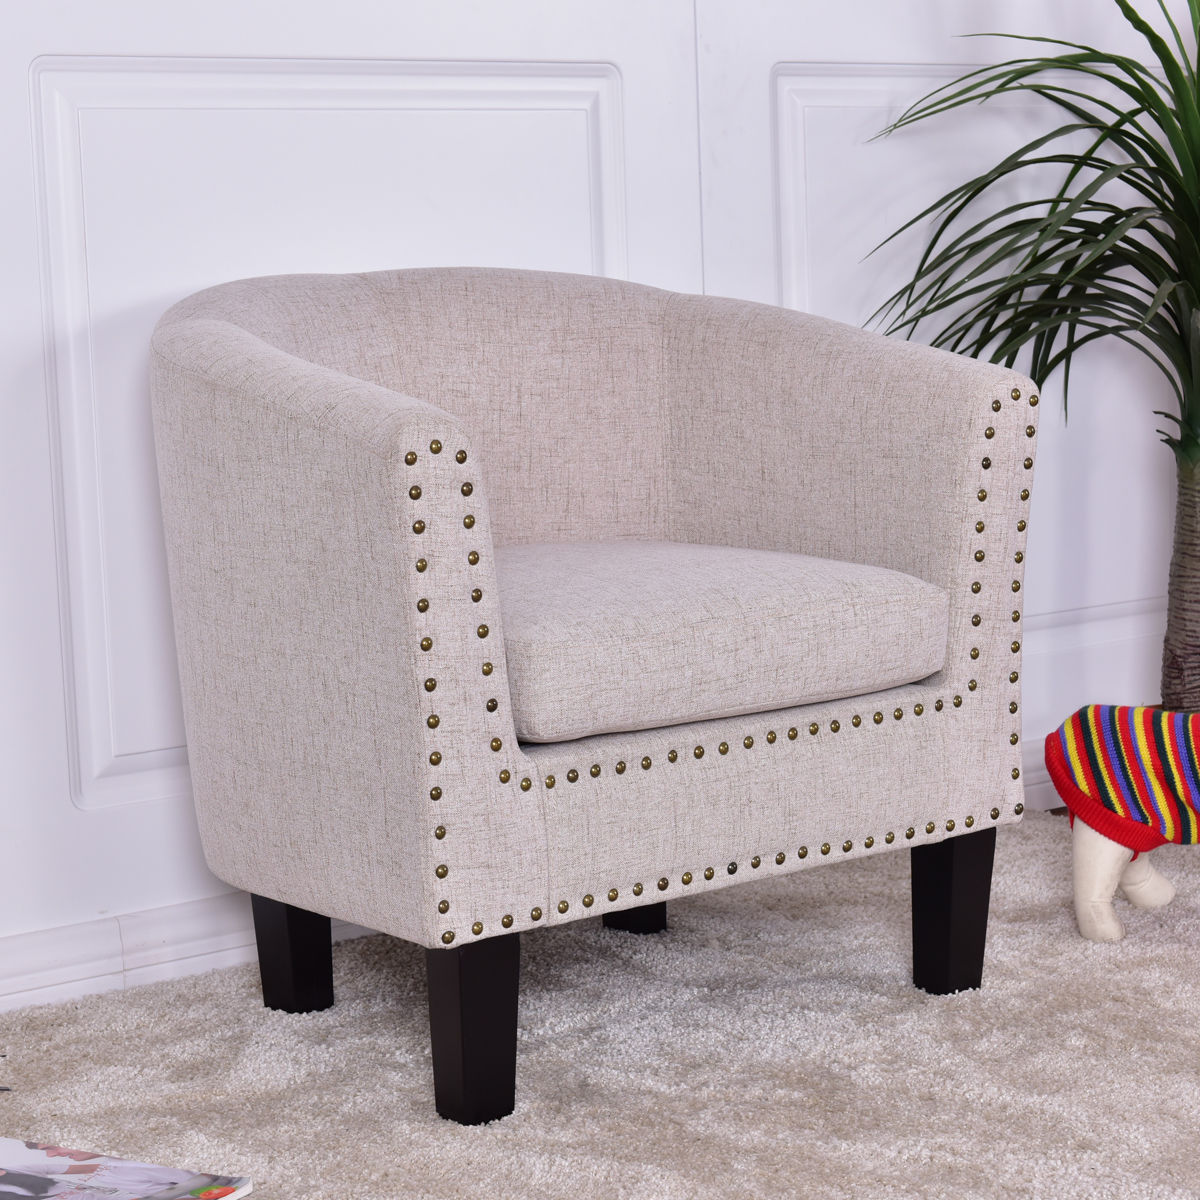 Lovely Giantex Modern Living Room Armchair Accent Fabric Rivets Single Sofa Chair  With Cushion Leisure Wood Home Furniture HW56011BE In Living Room Chairs  From ...